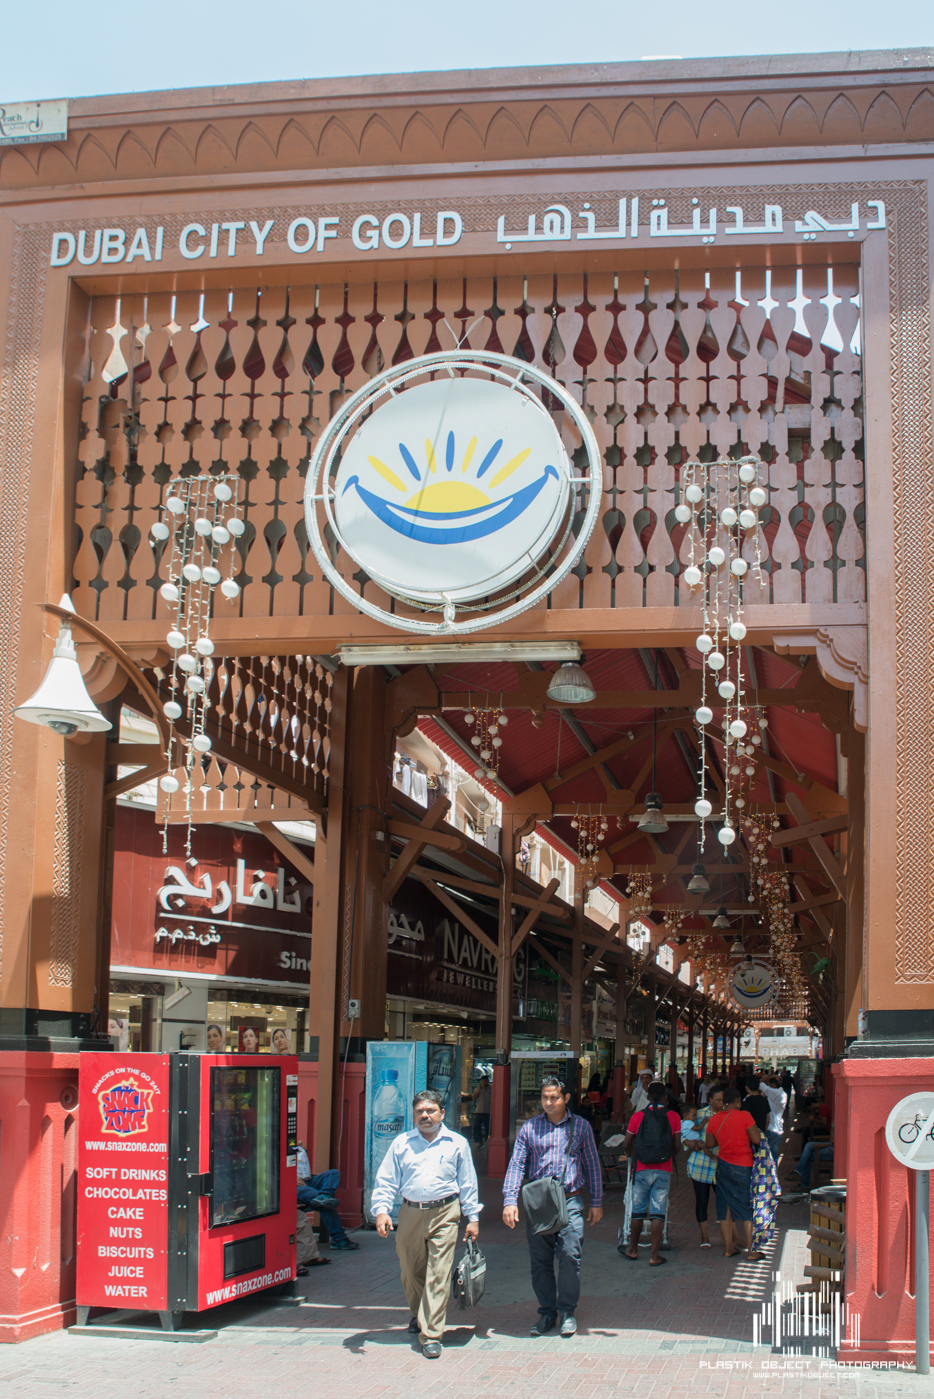 The main entry to the Gold Souk